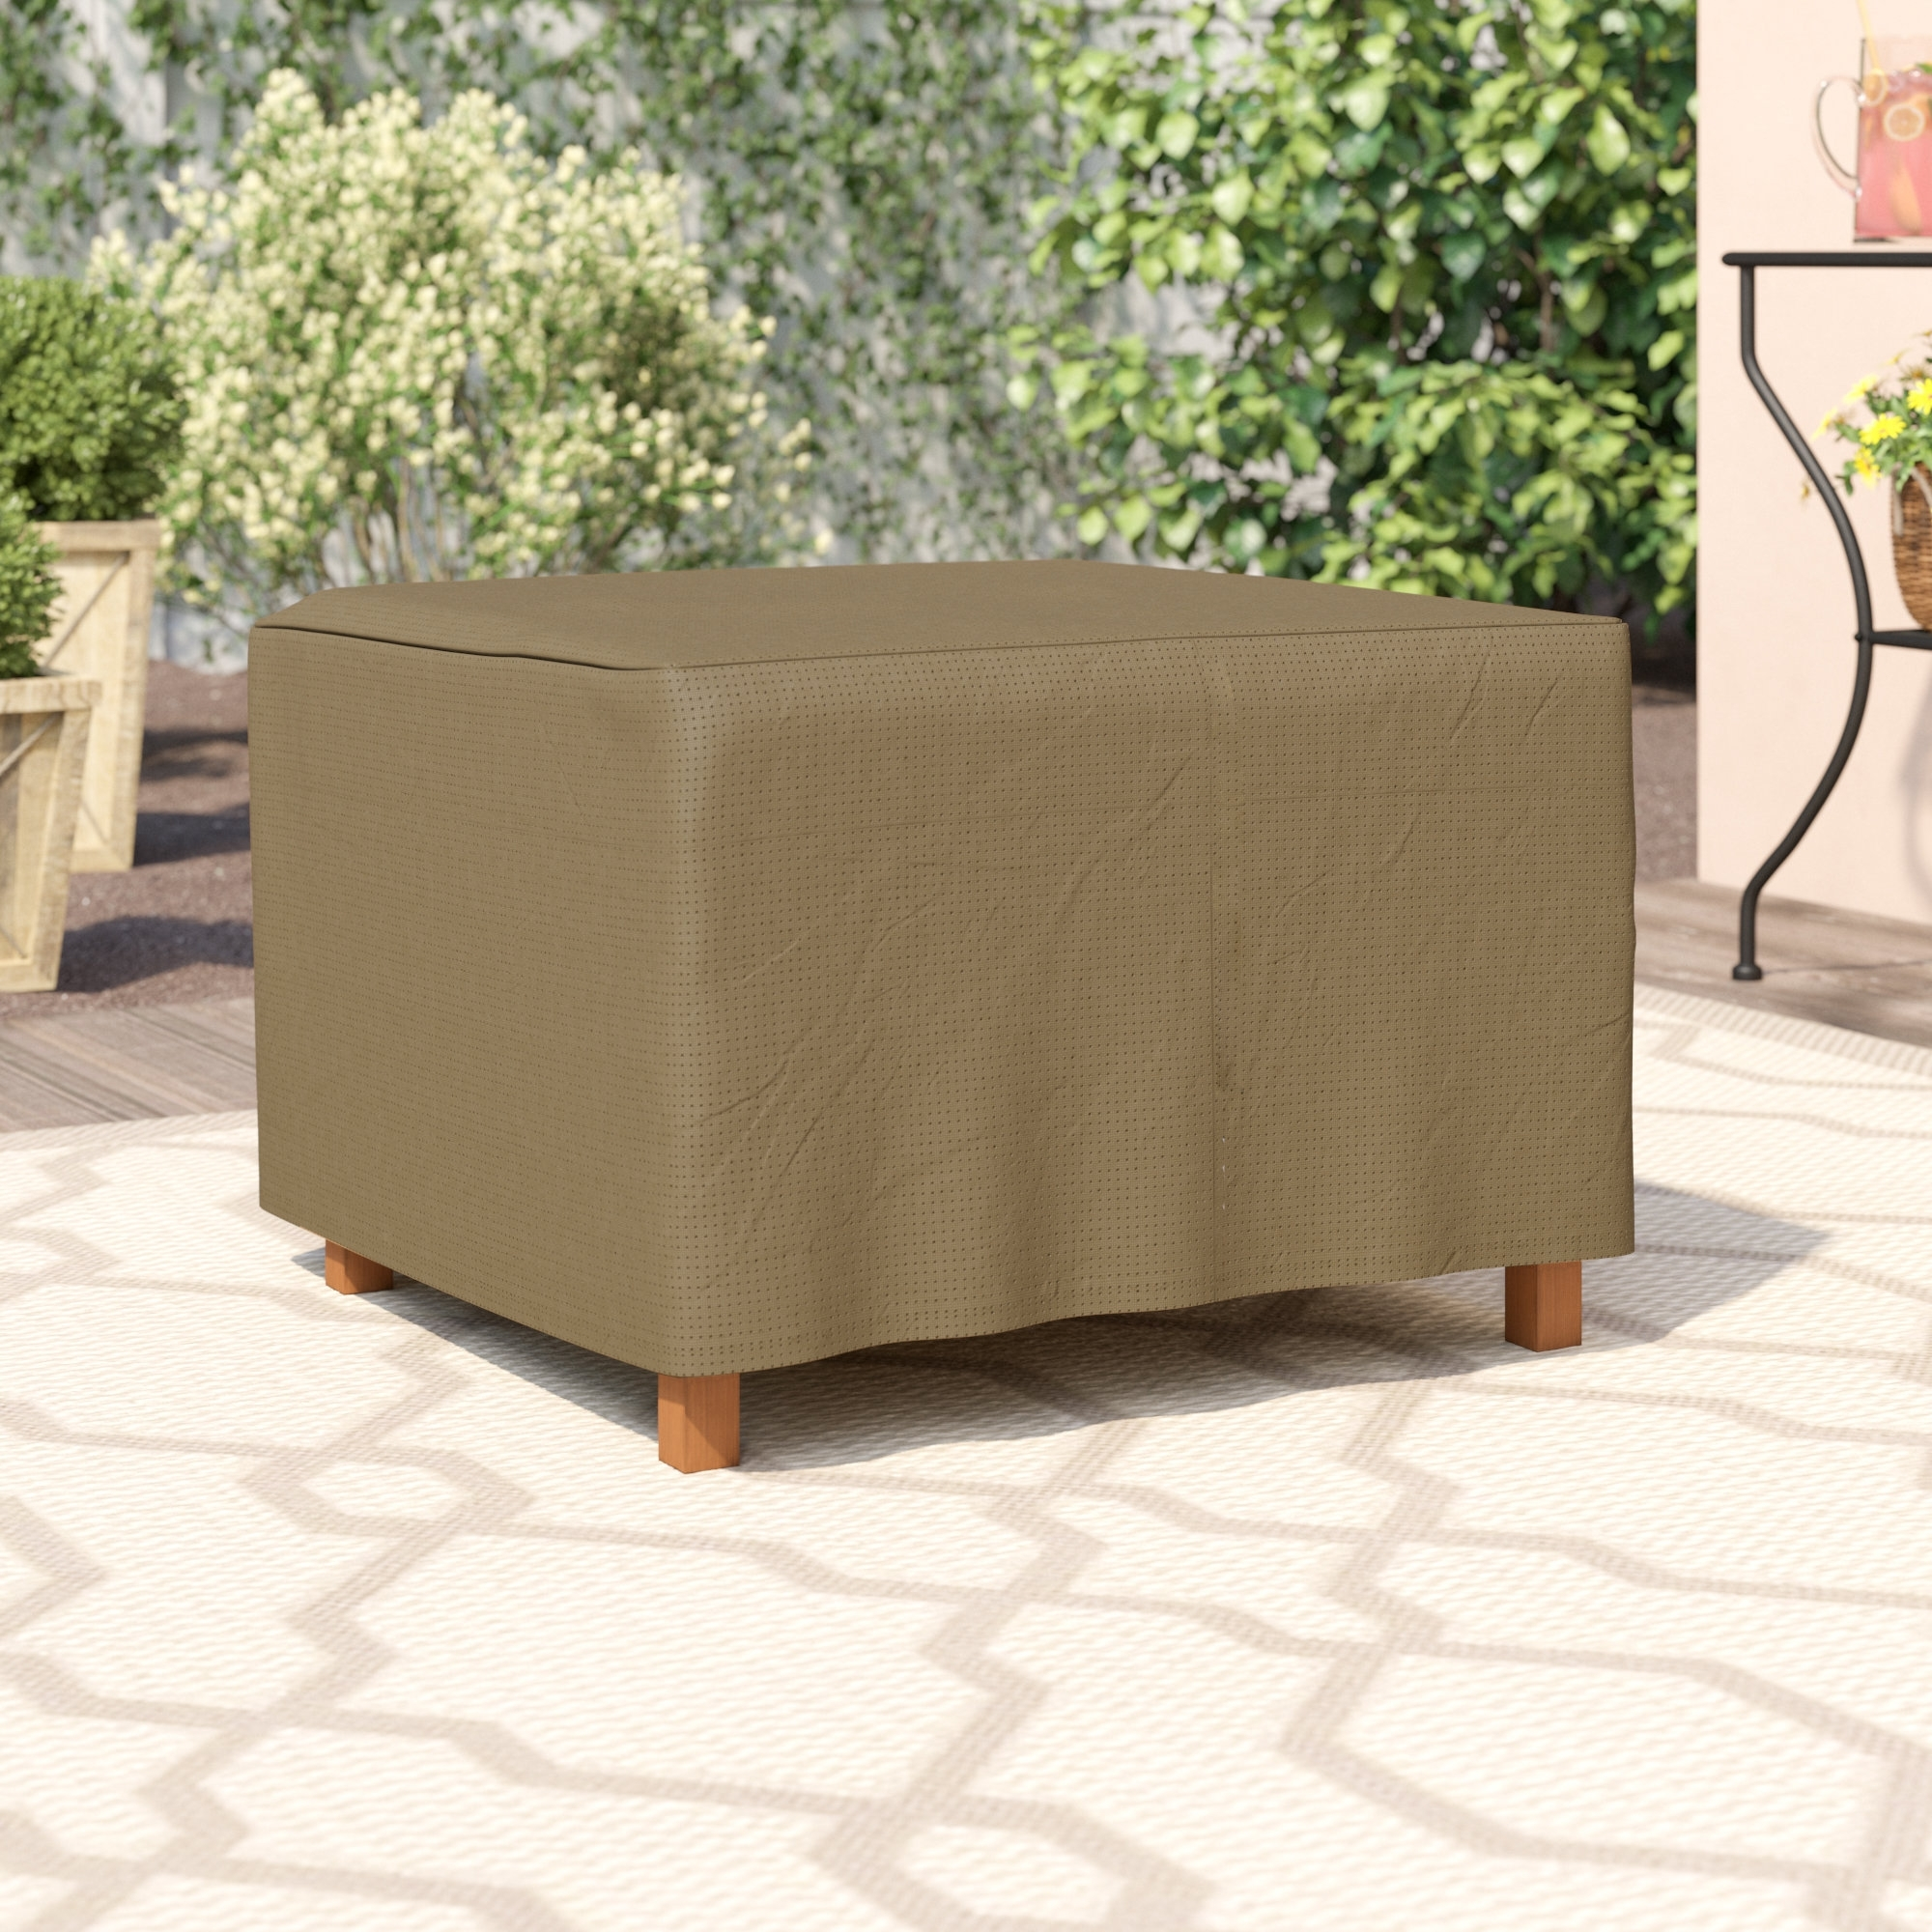 Amazing Side Table Cover Casbah Coffee Review C H Cloth With Fabric in Casbah Coffee-Side Tables (Image 2 of 30)